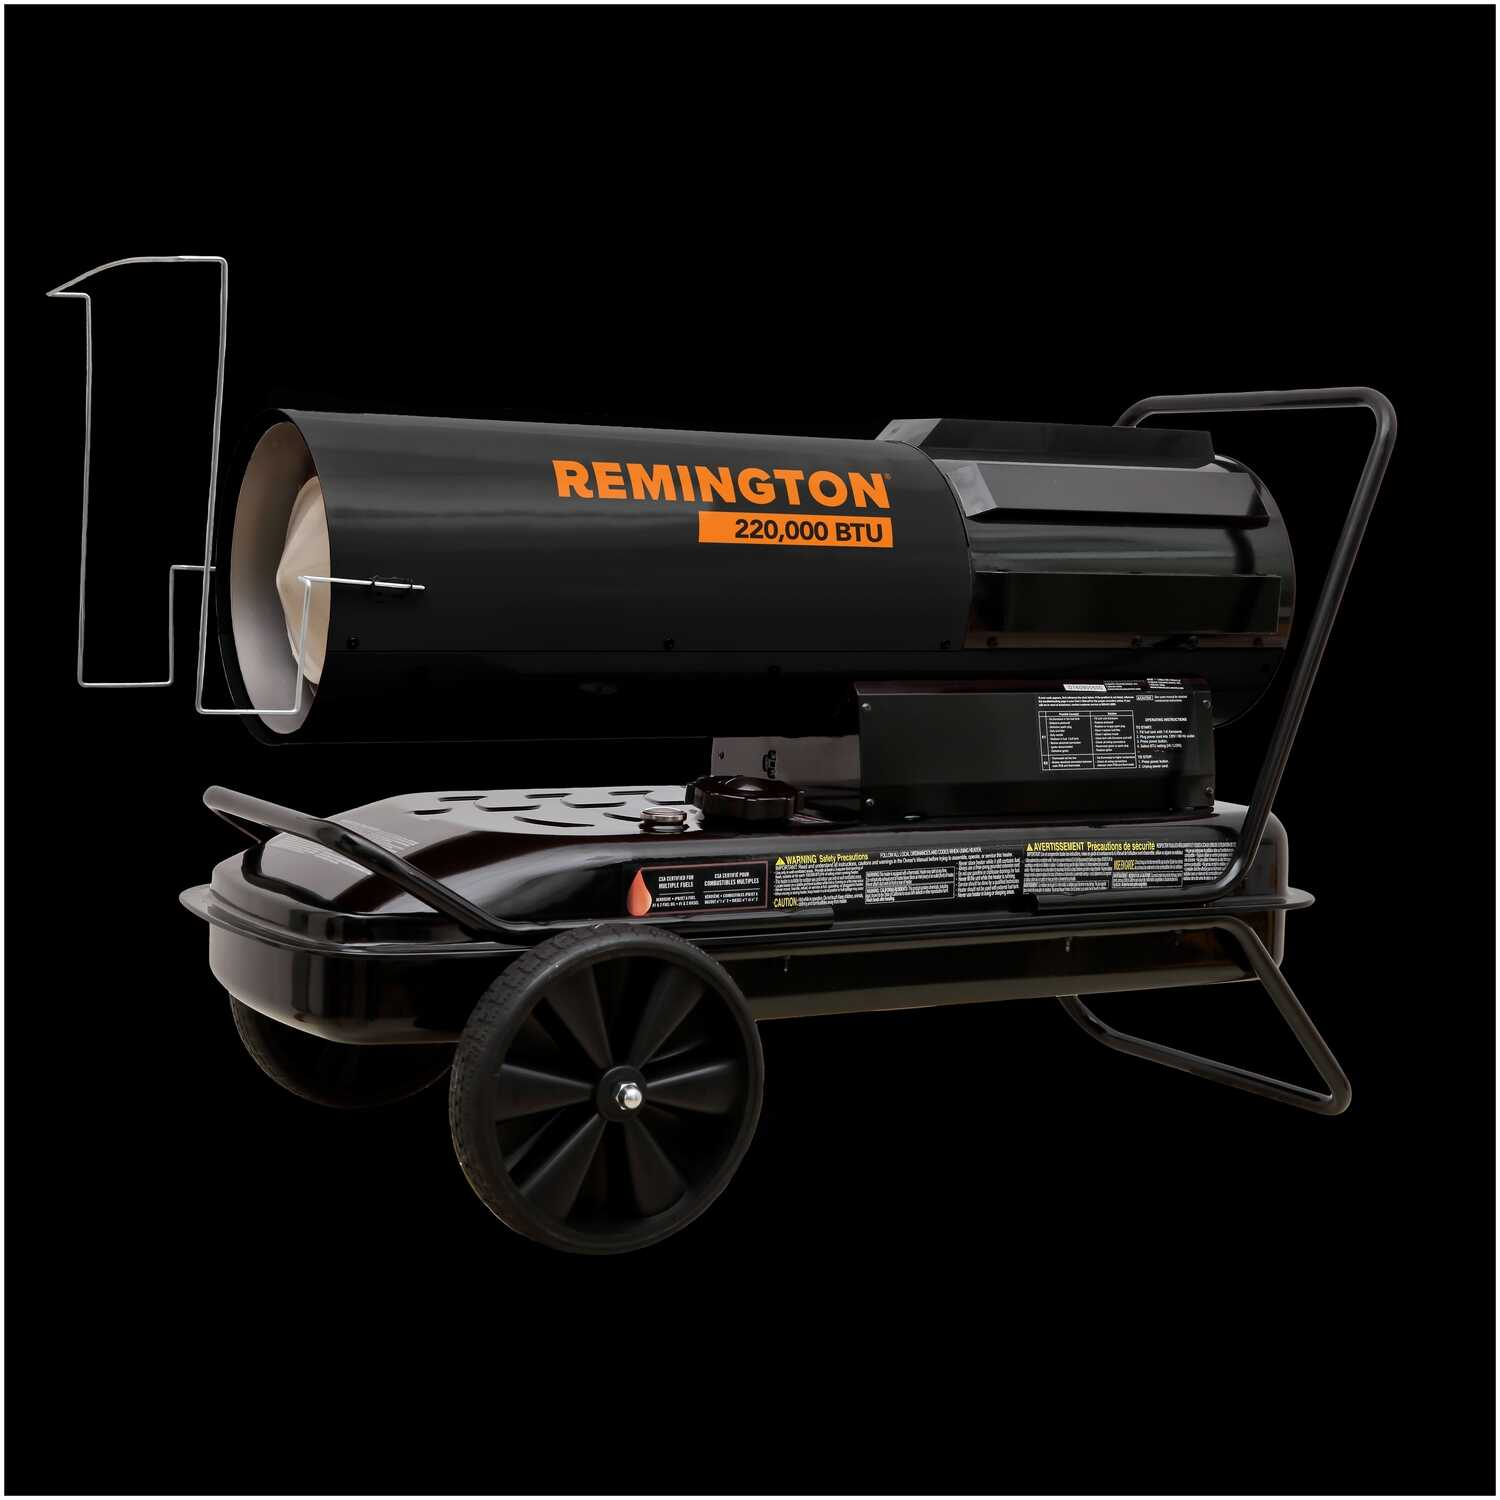 Remington  3800 sq. ft. Multiple  Forced Air  Portable Heater